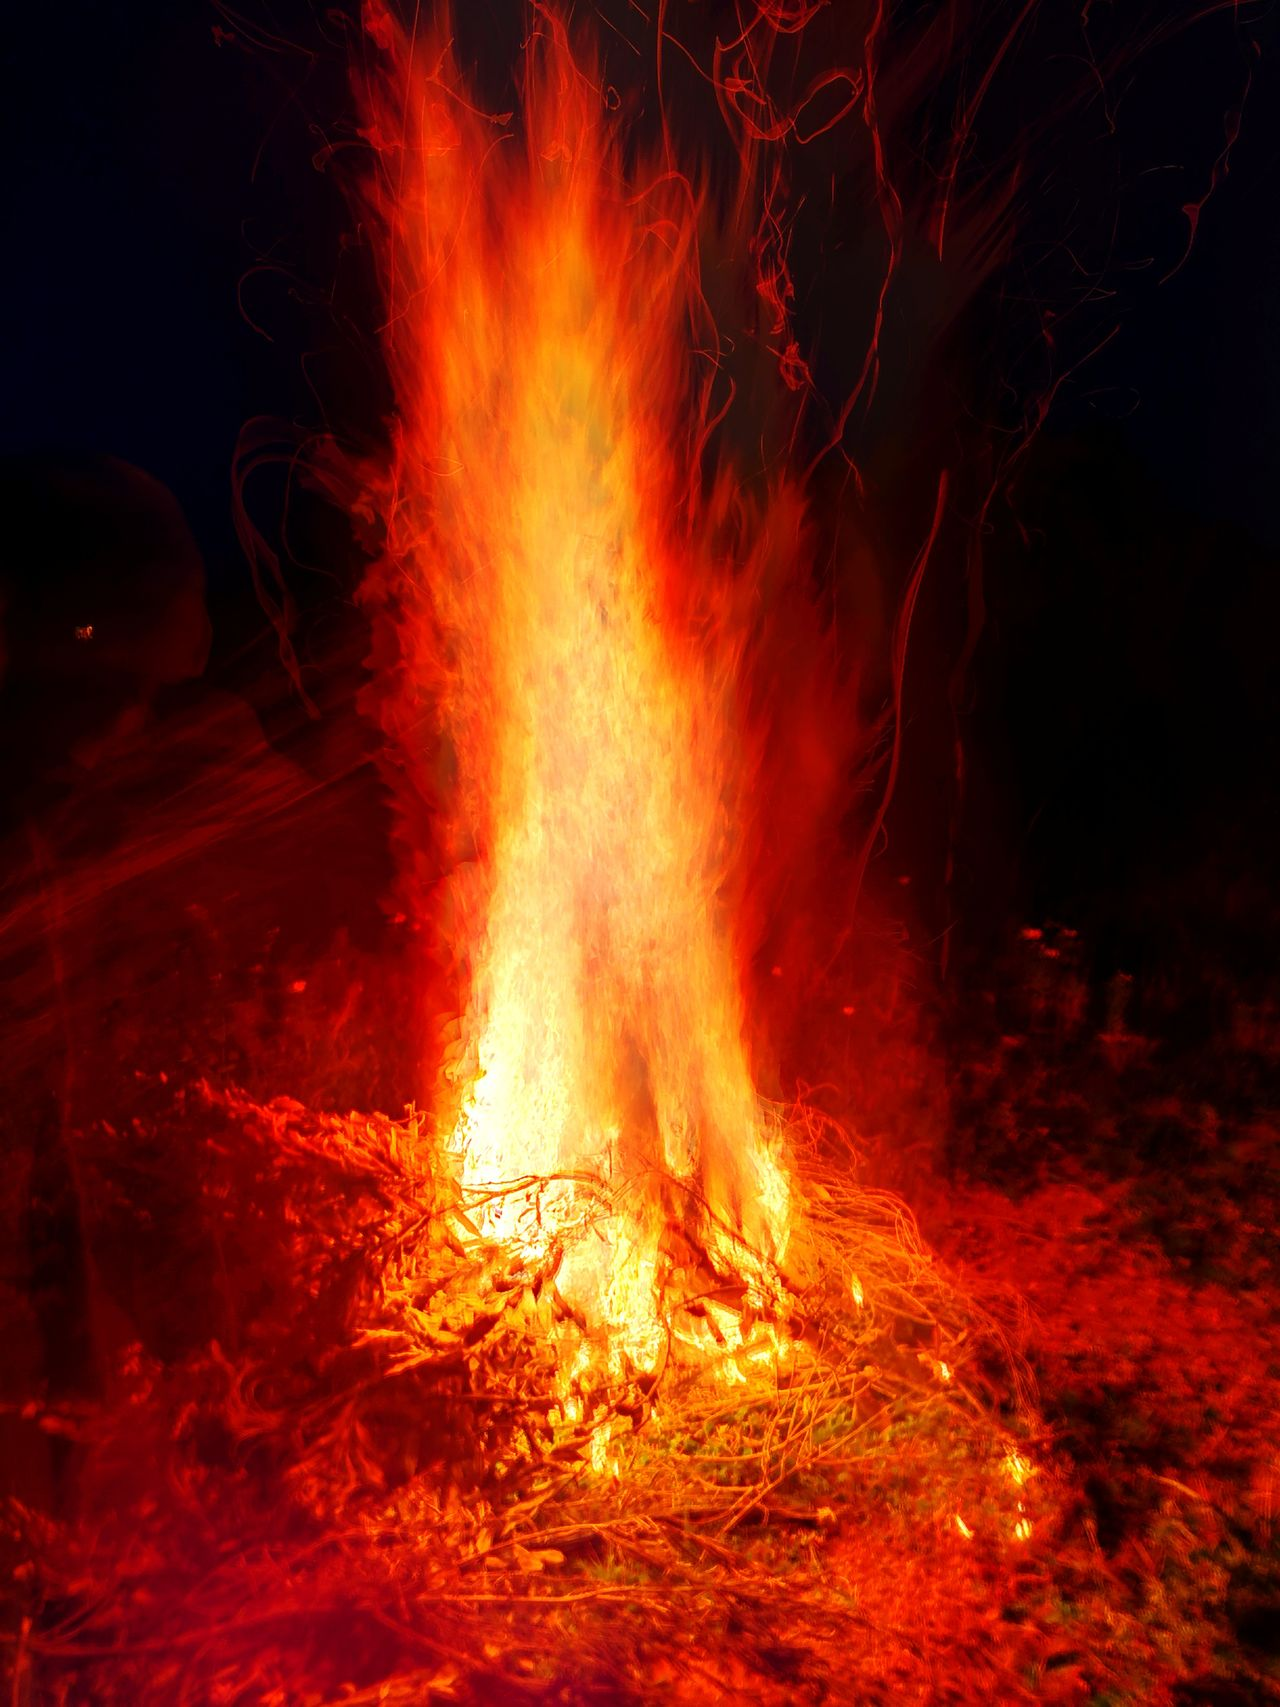 No People Night Lava Red Outdoors Colors Nature Set On Fire Illuminated Tradition Amazing One Man Only High Temperatures